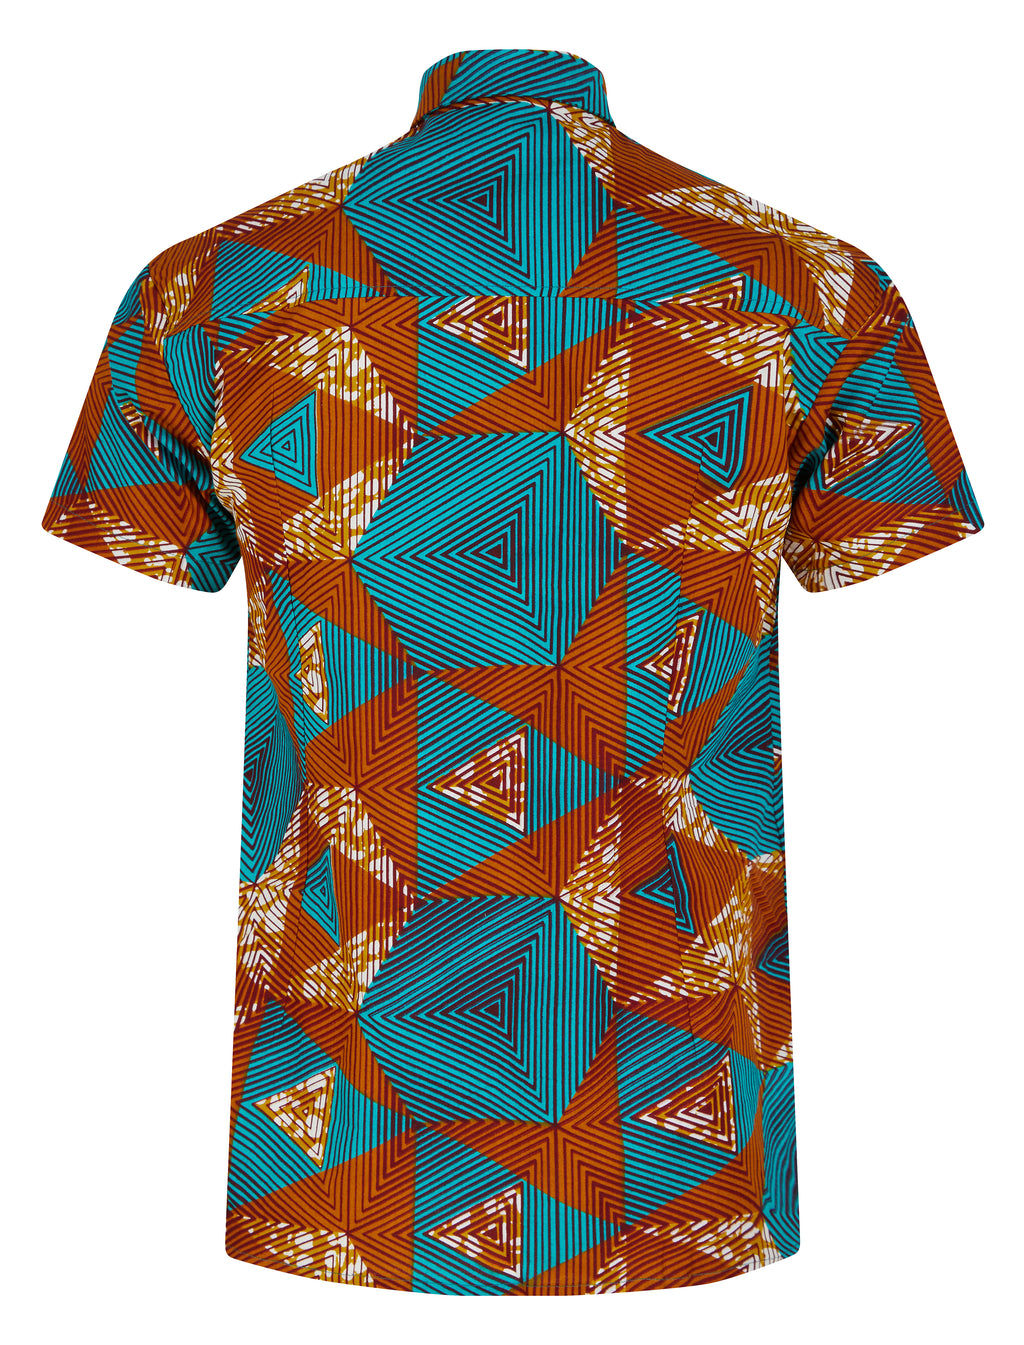 Men's SS African print shirt- Labyrinth